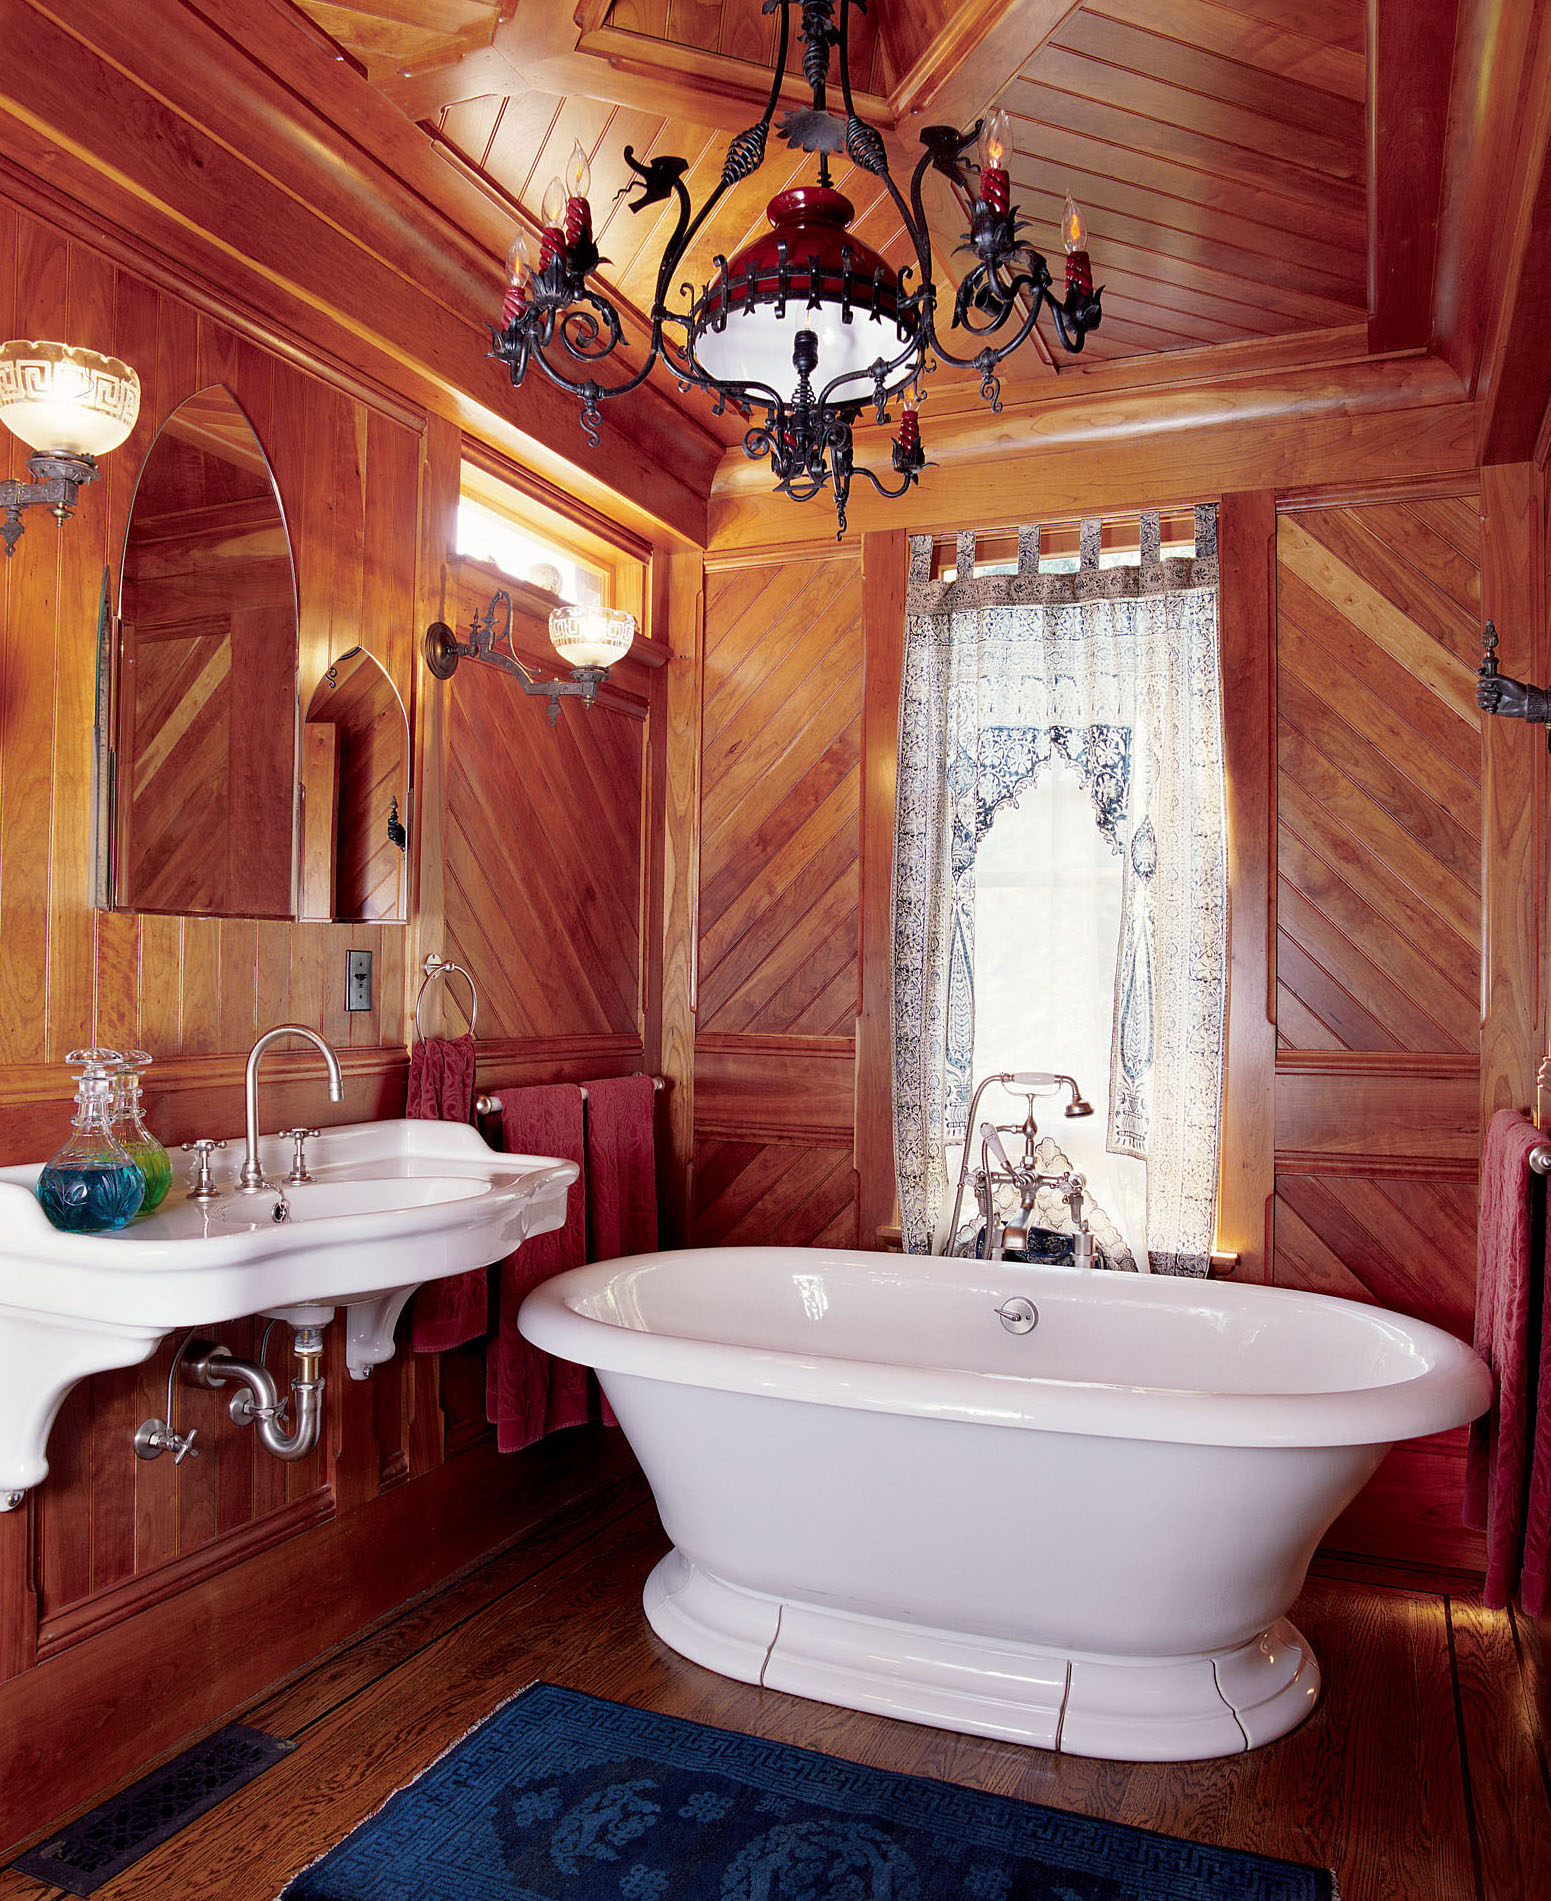 Designing The Victorian Bath For Today Old House Journal